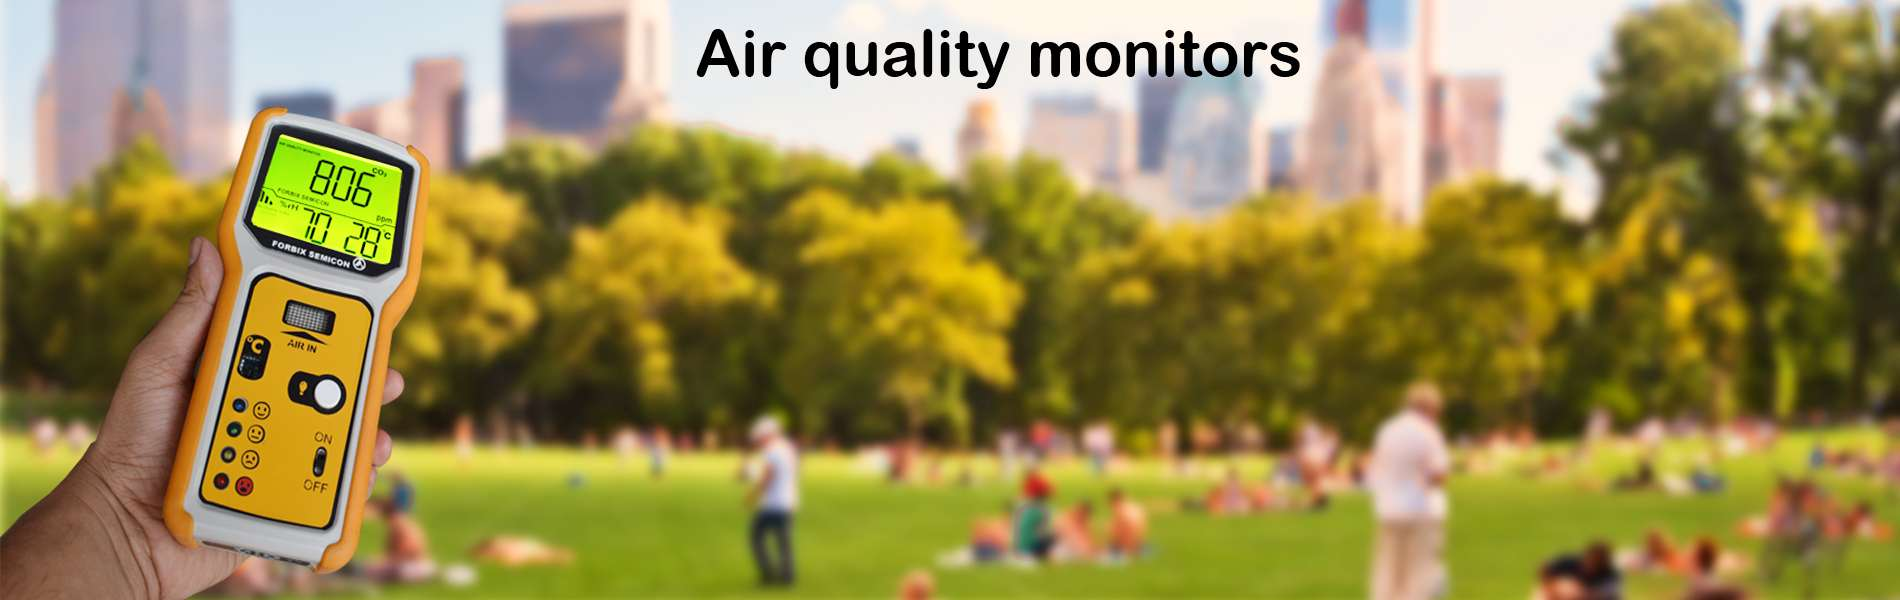 FORBIX Osaühing air quality monitors